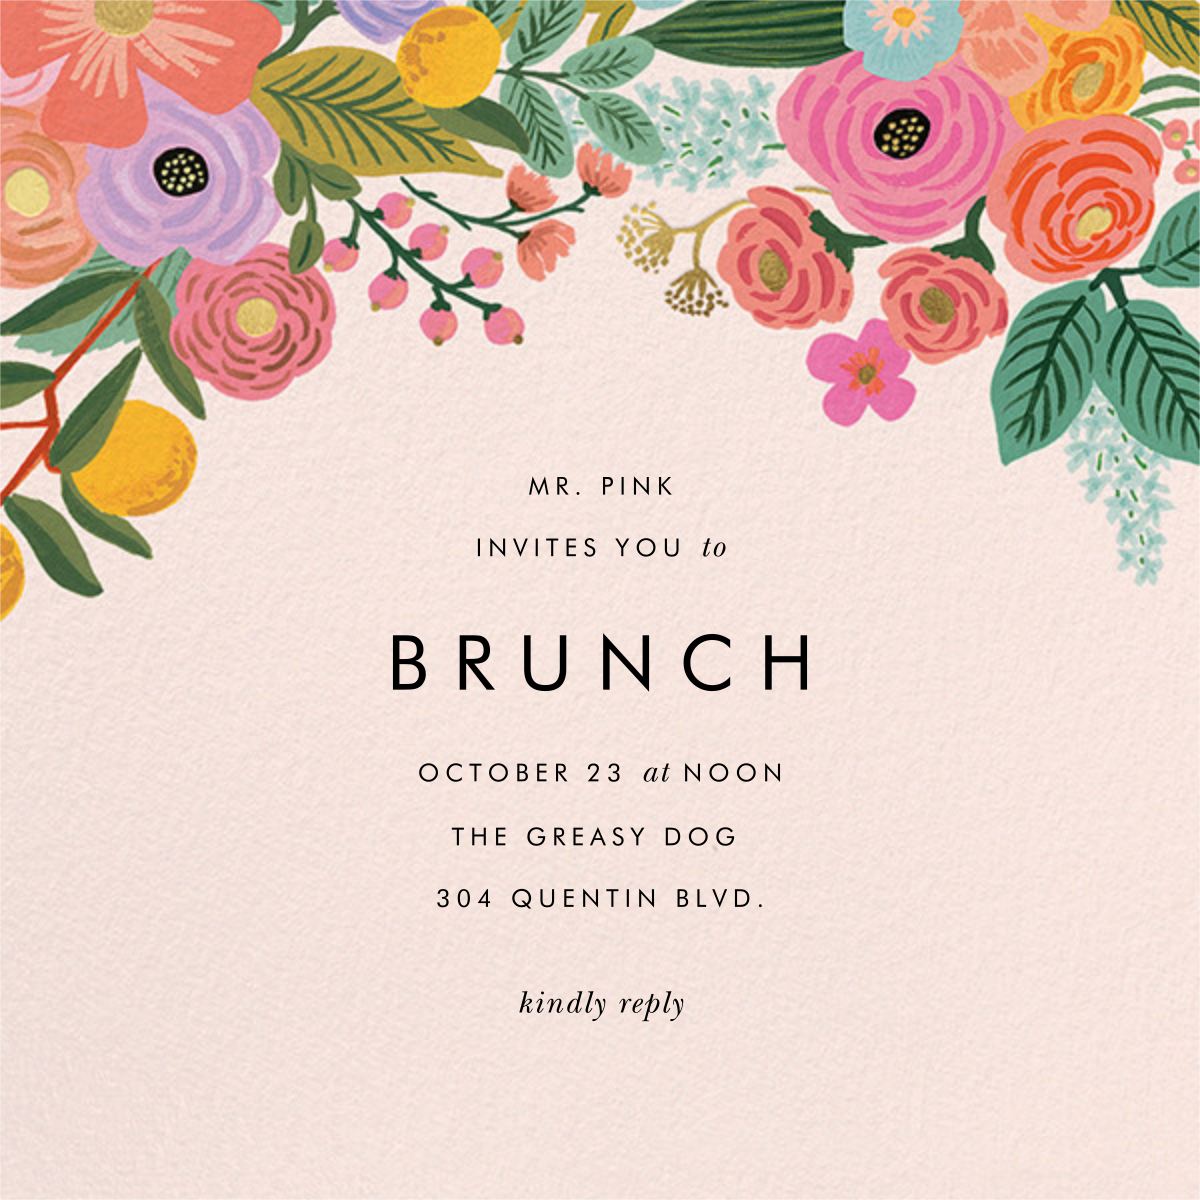 Garden Party (Square) - Rifle Paper Co. - Brunch